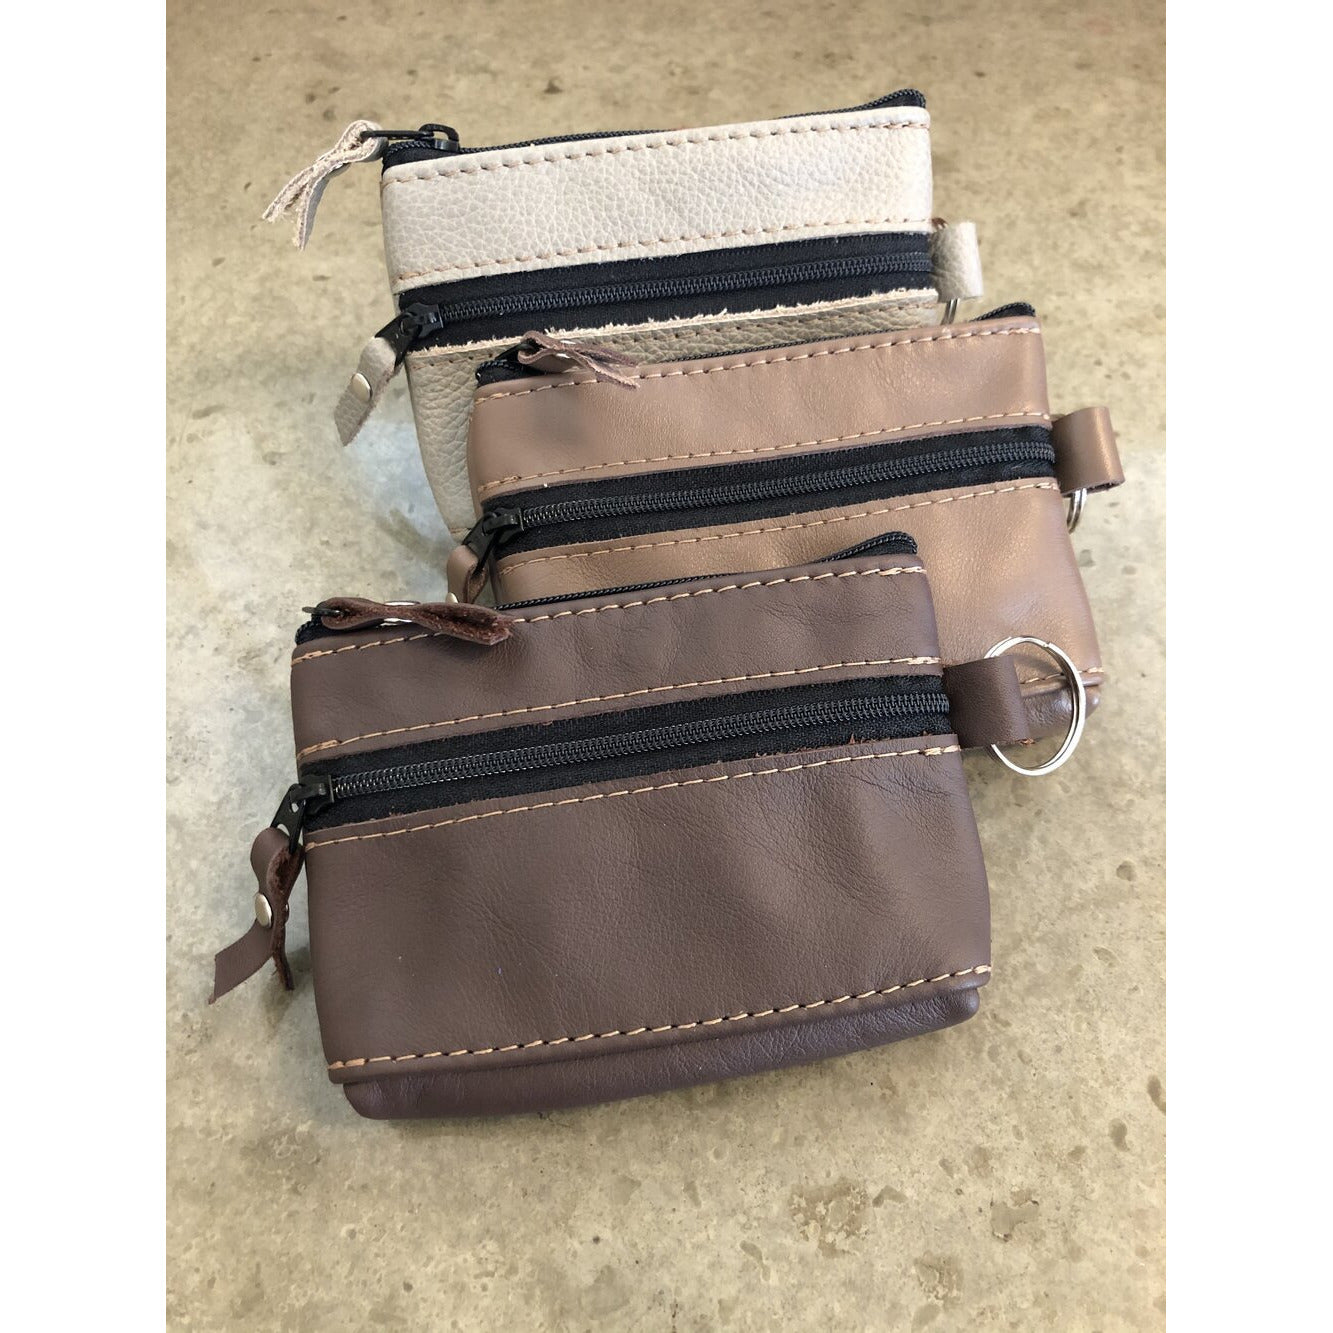 2 Zipper Leather Pouch in brown, light brown, and beige